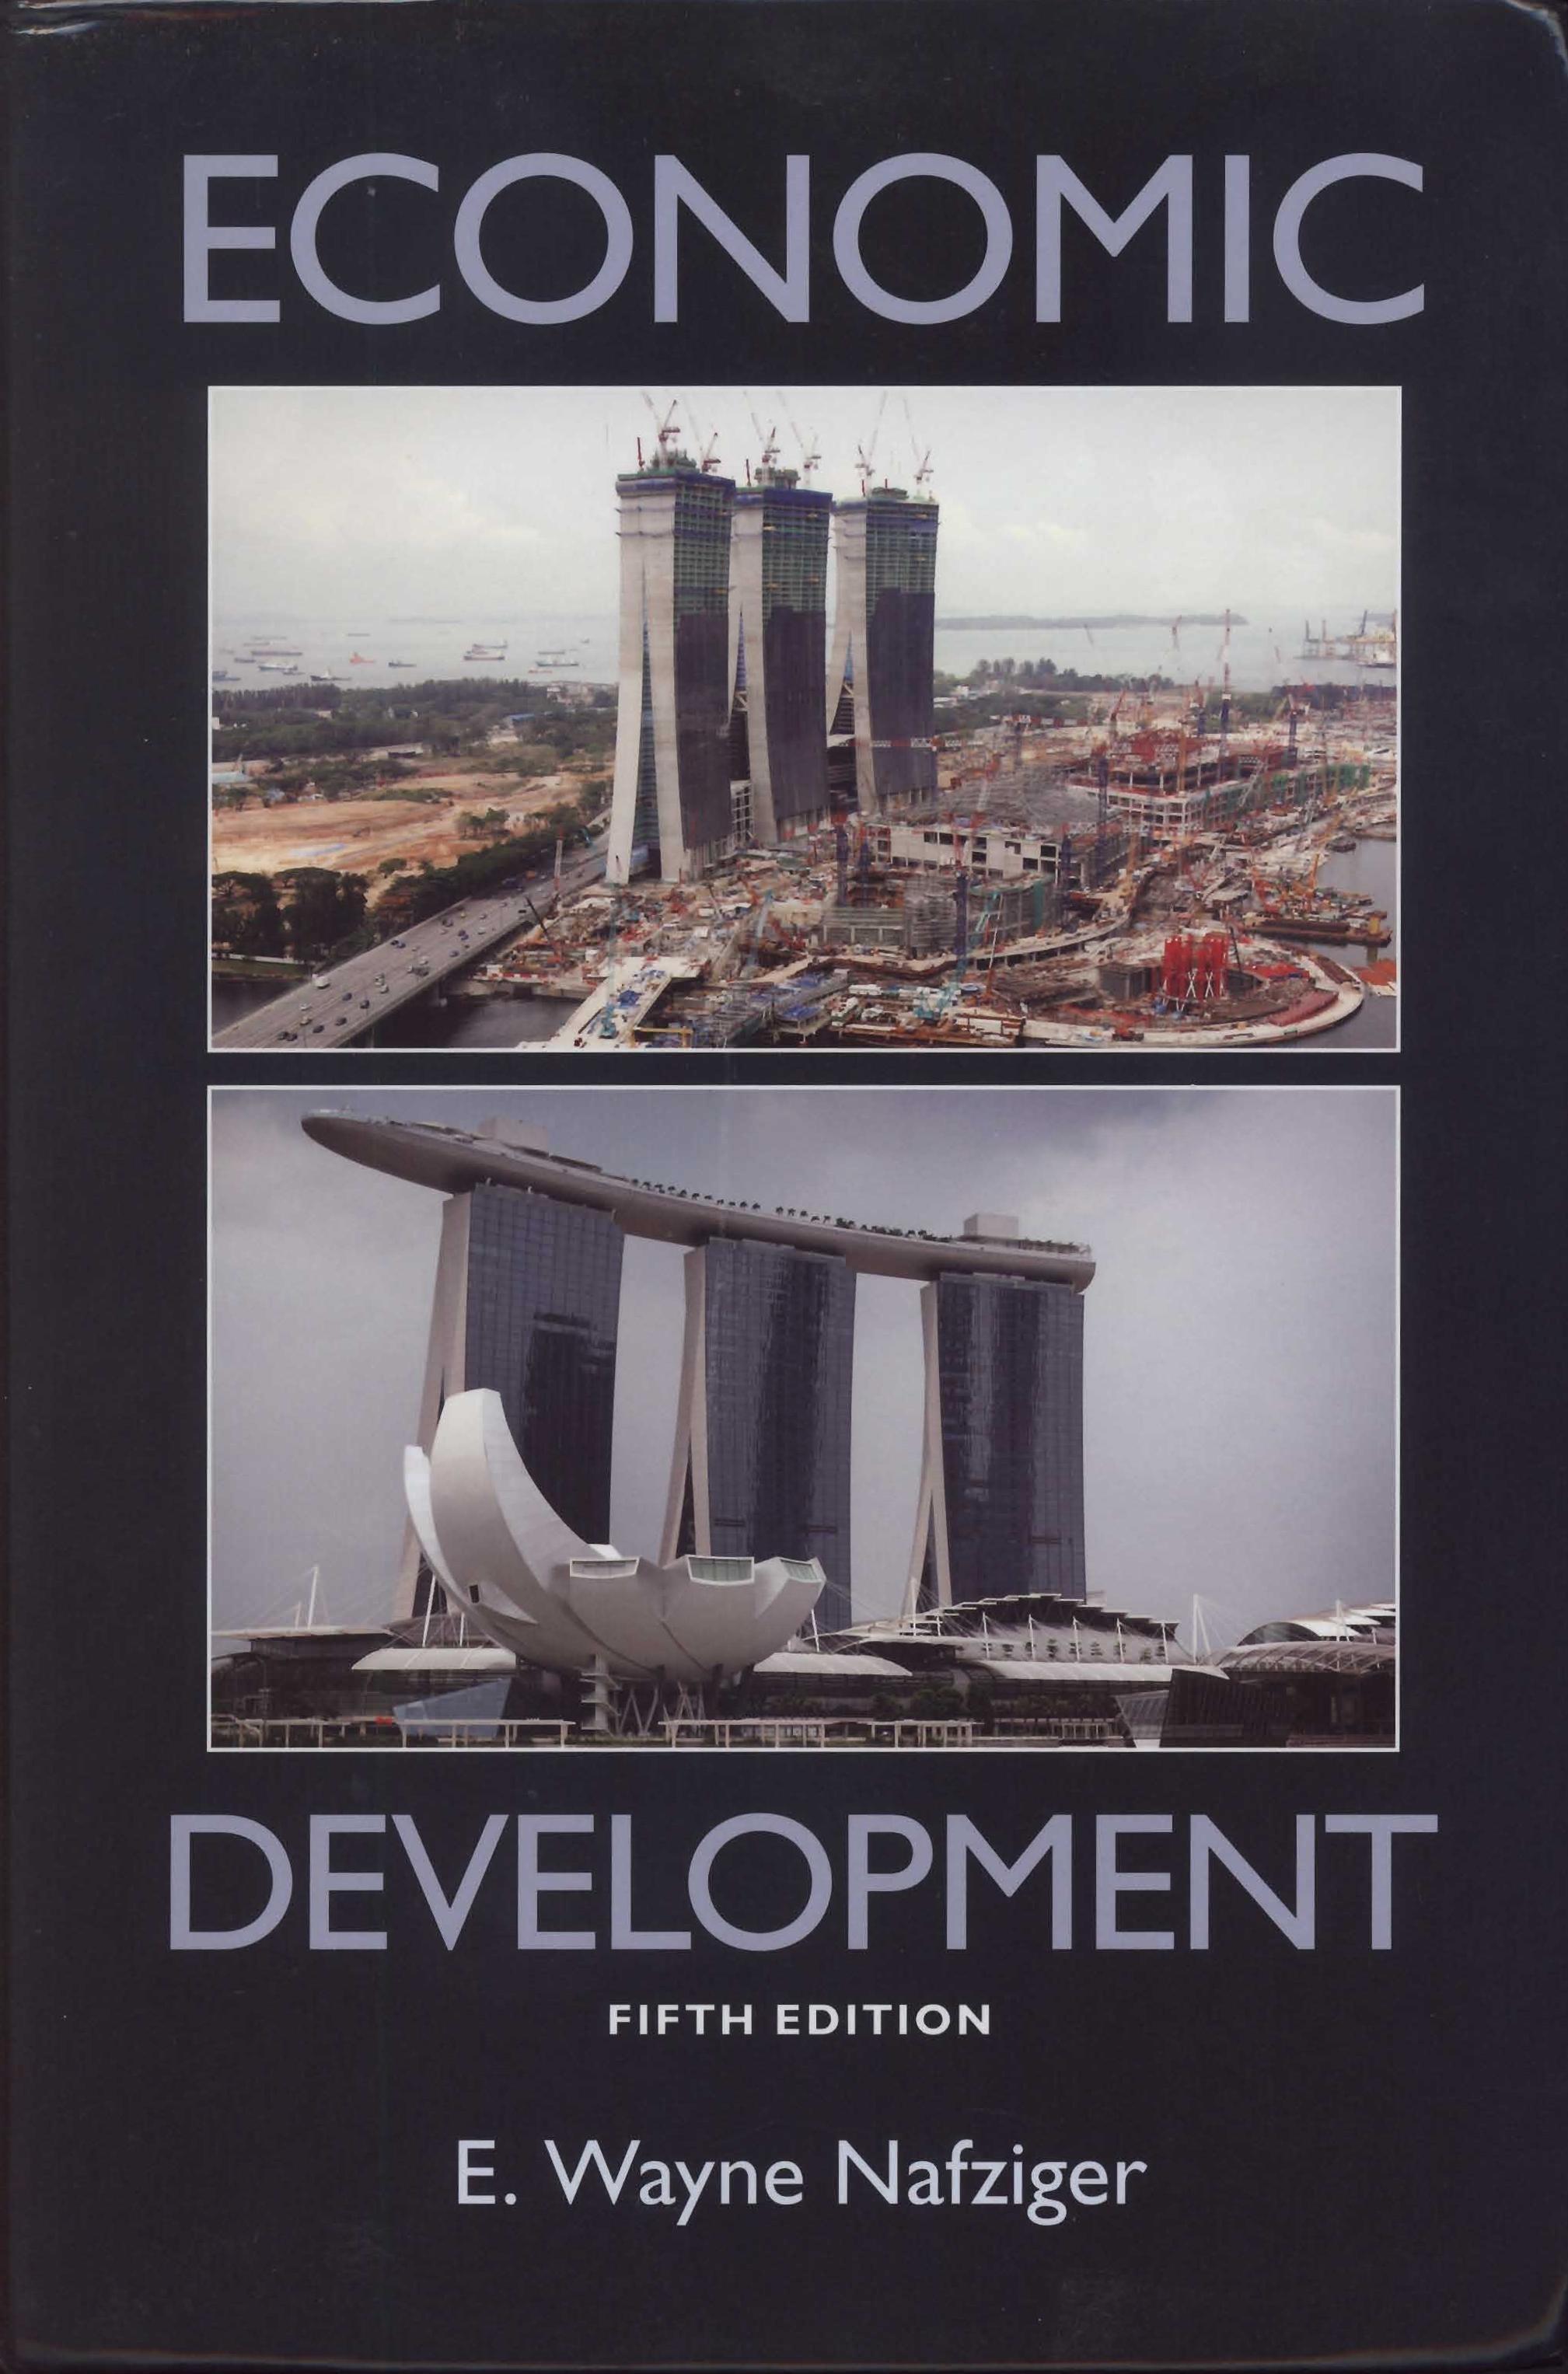 Dr. Nafziger's book, Economic Development